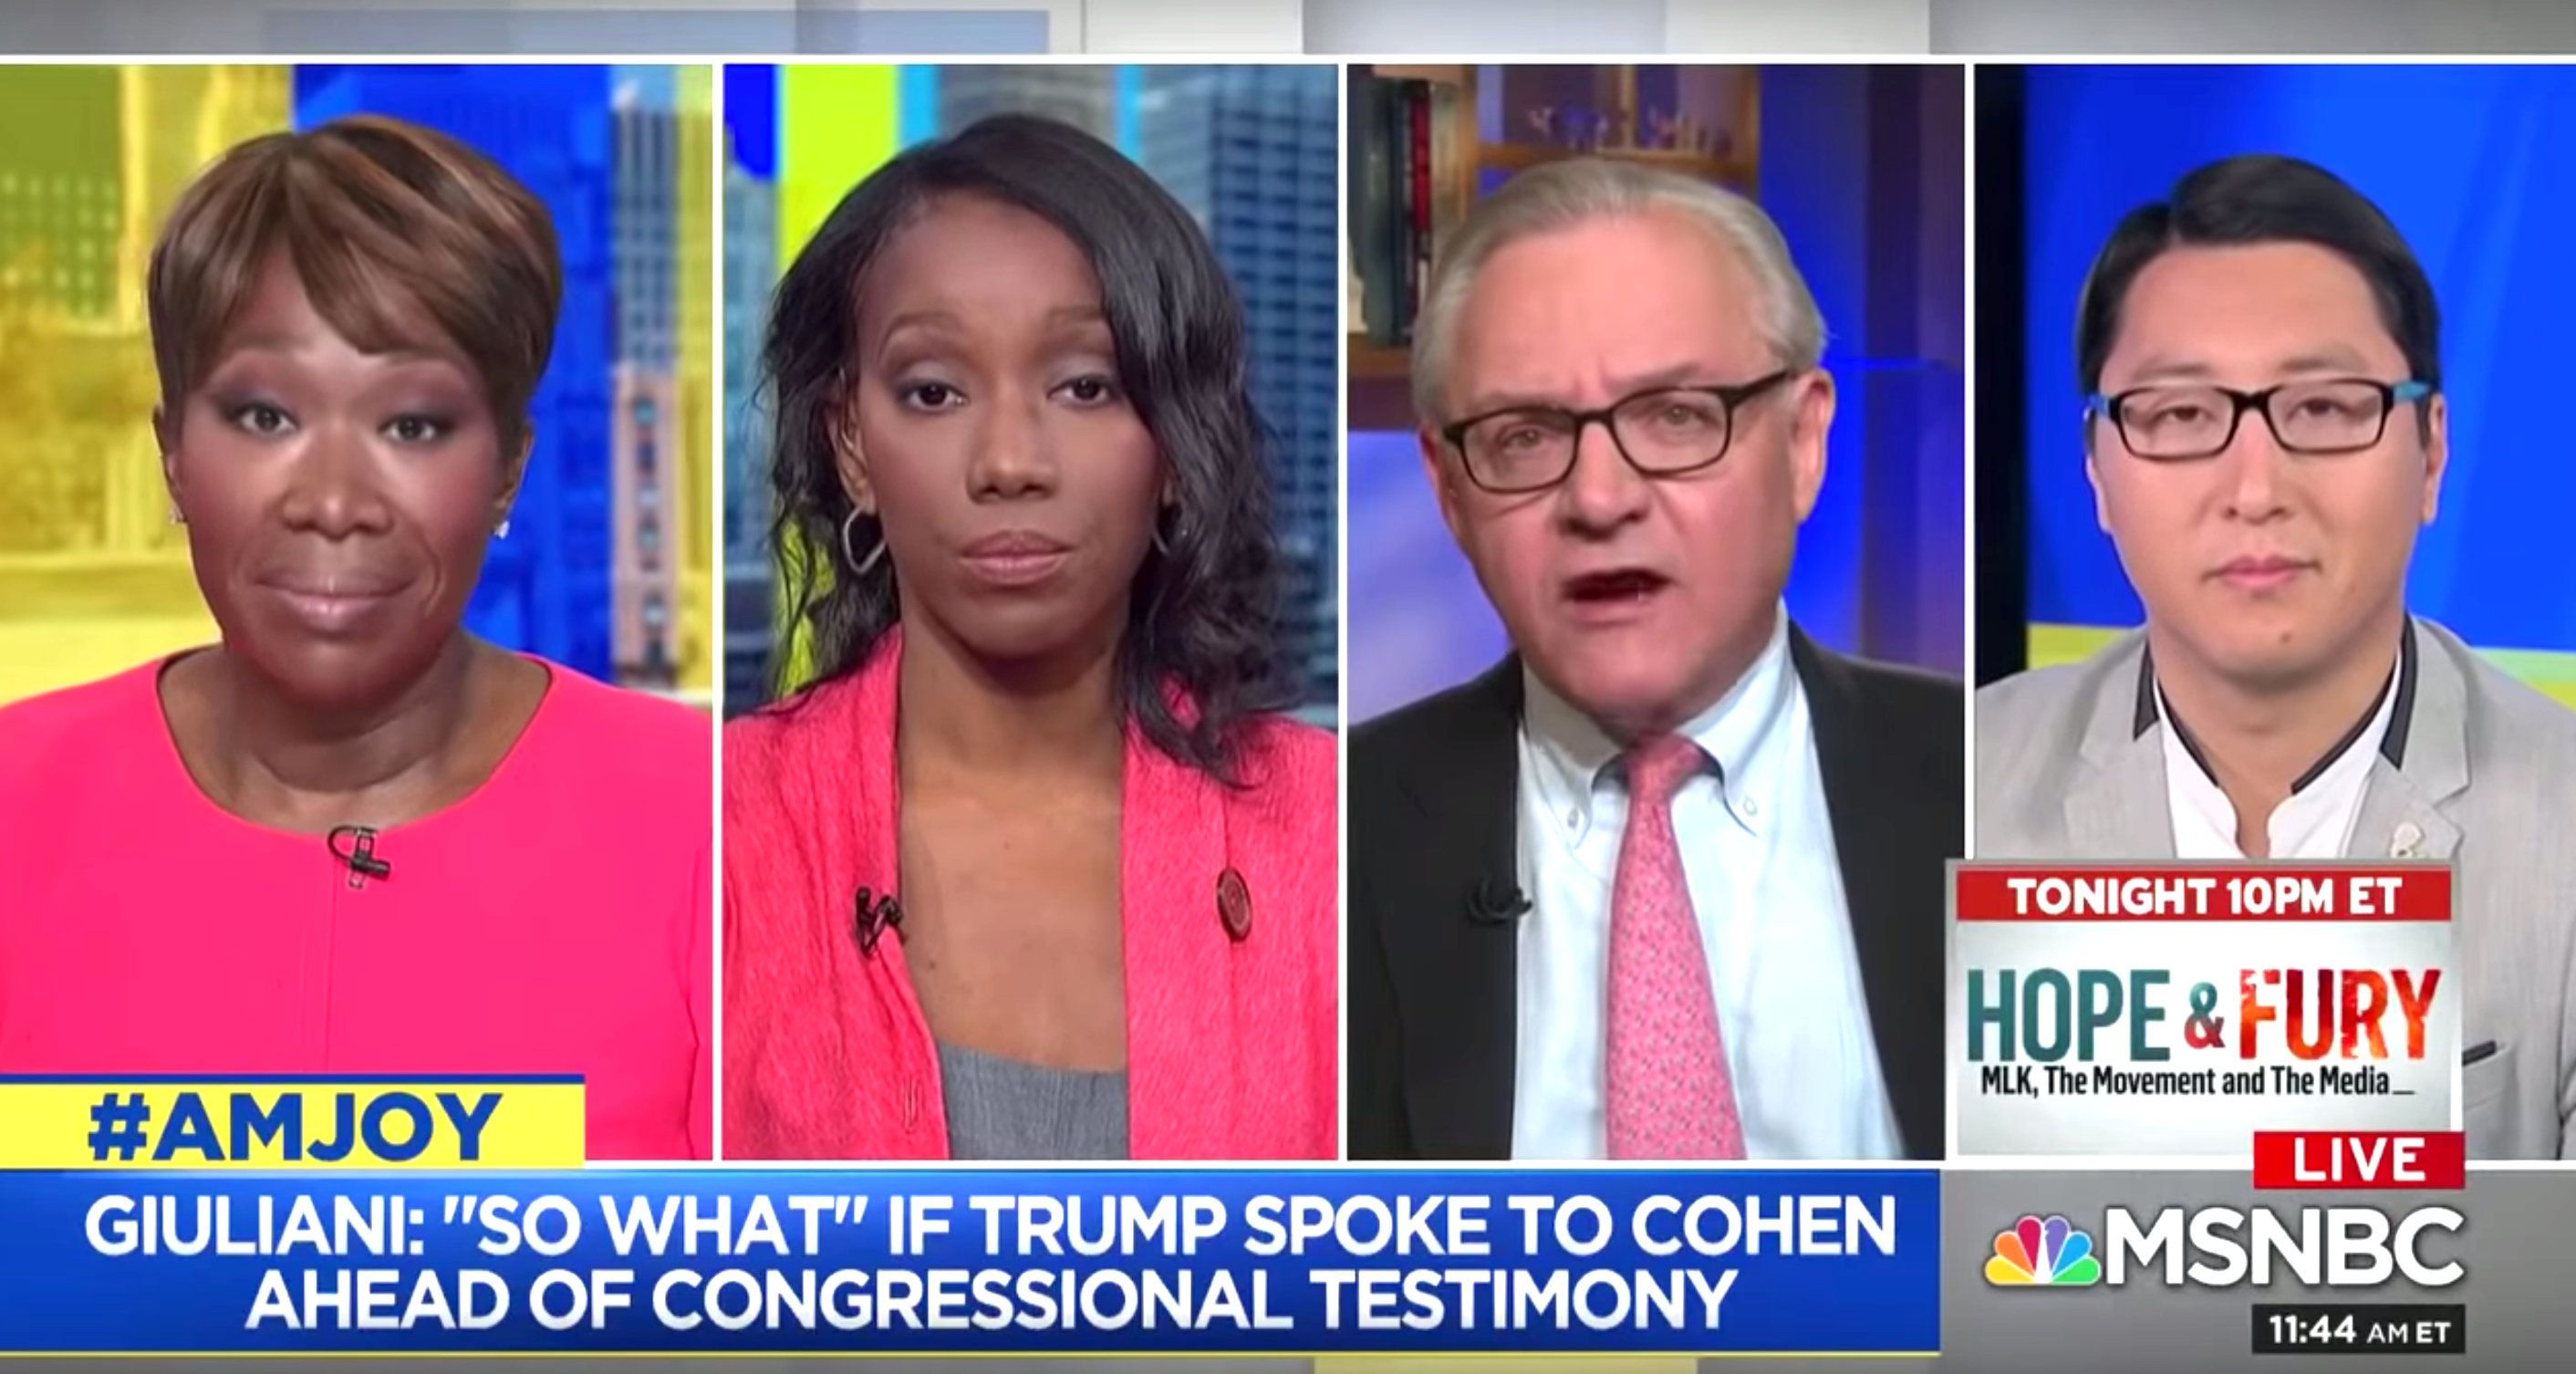 A merciless MSNBC panel roasted President Donald Trump's lawyer as the worst the legal profession has to offer.